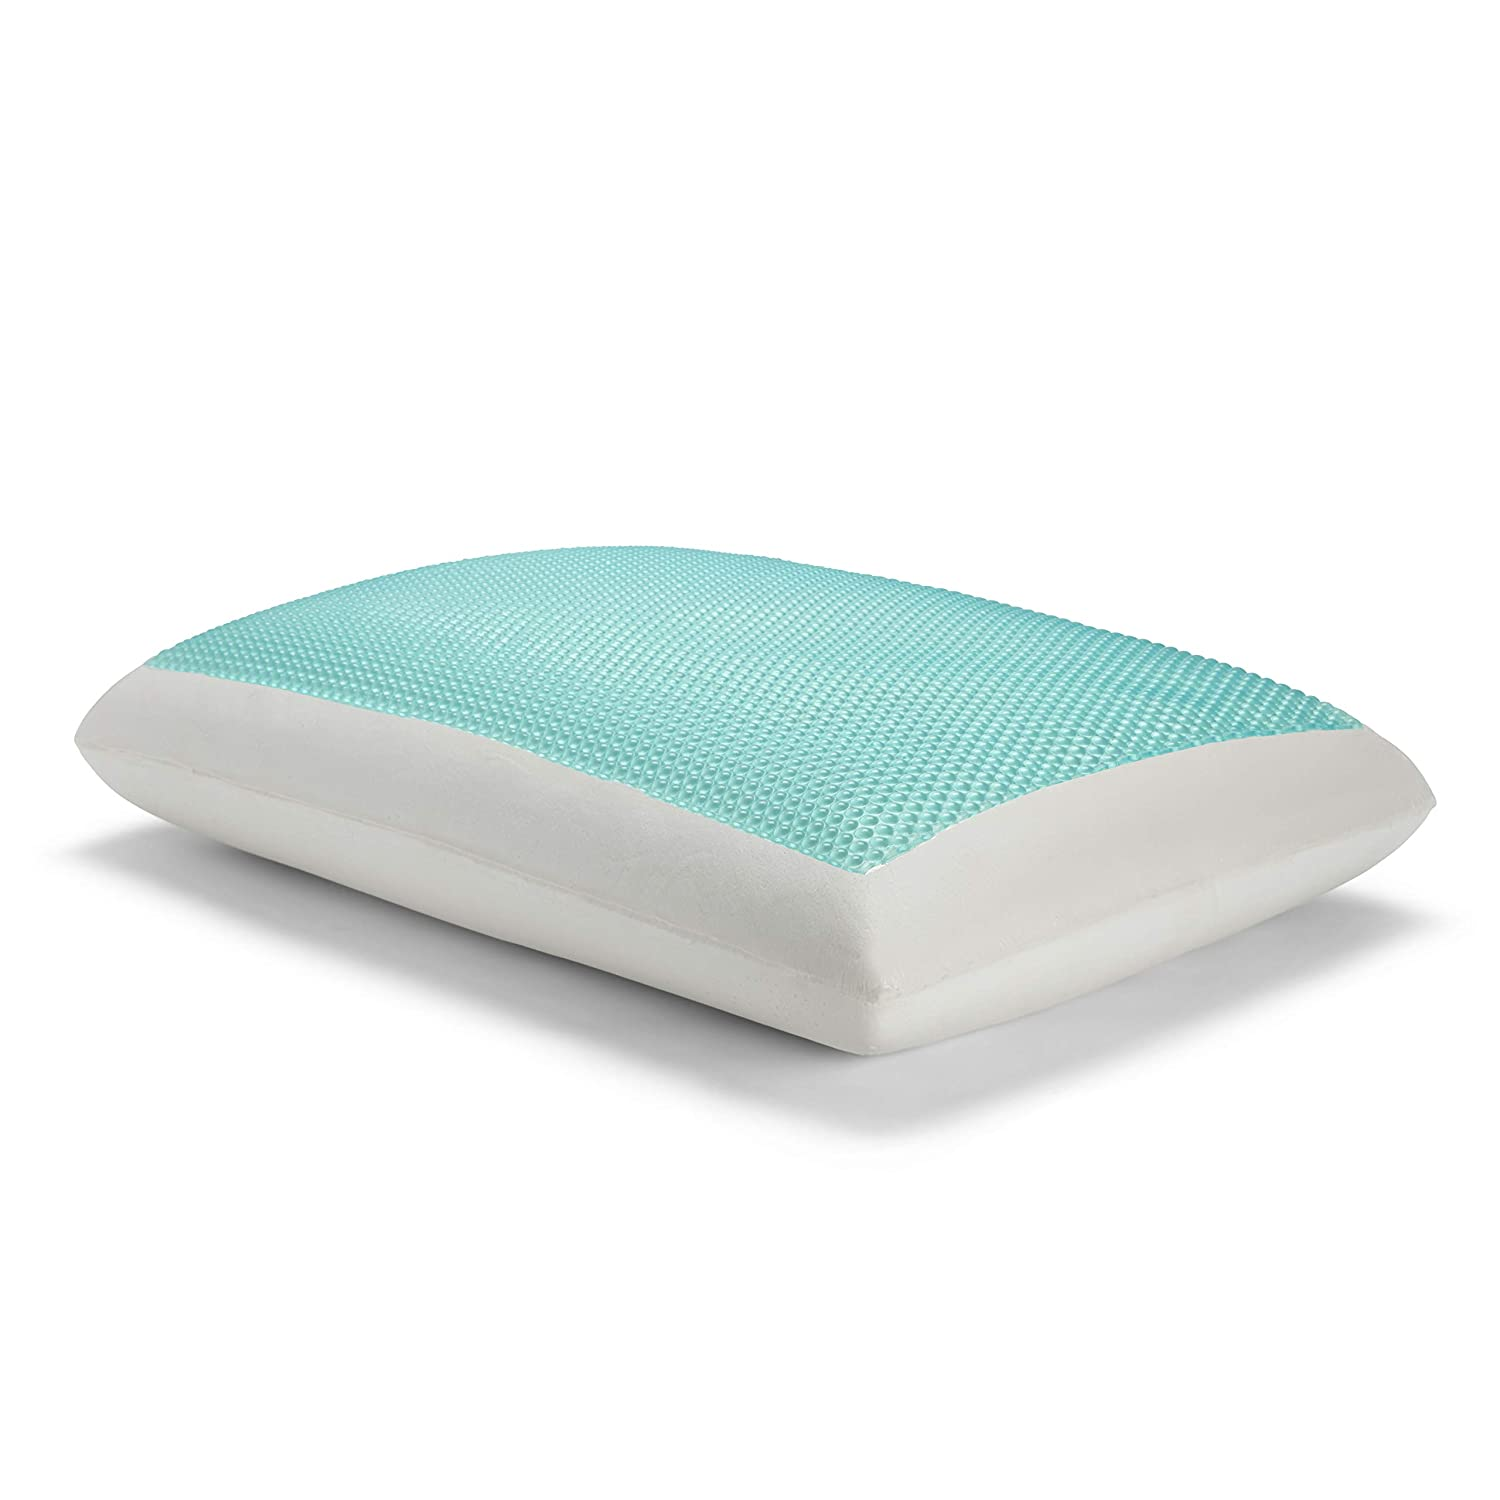 Sealy essentials Memory Foam Gel Cooling Pillow, Standard, white